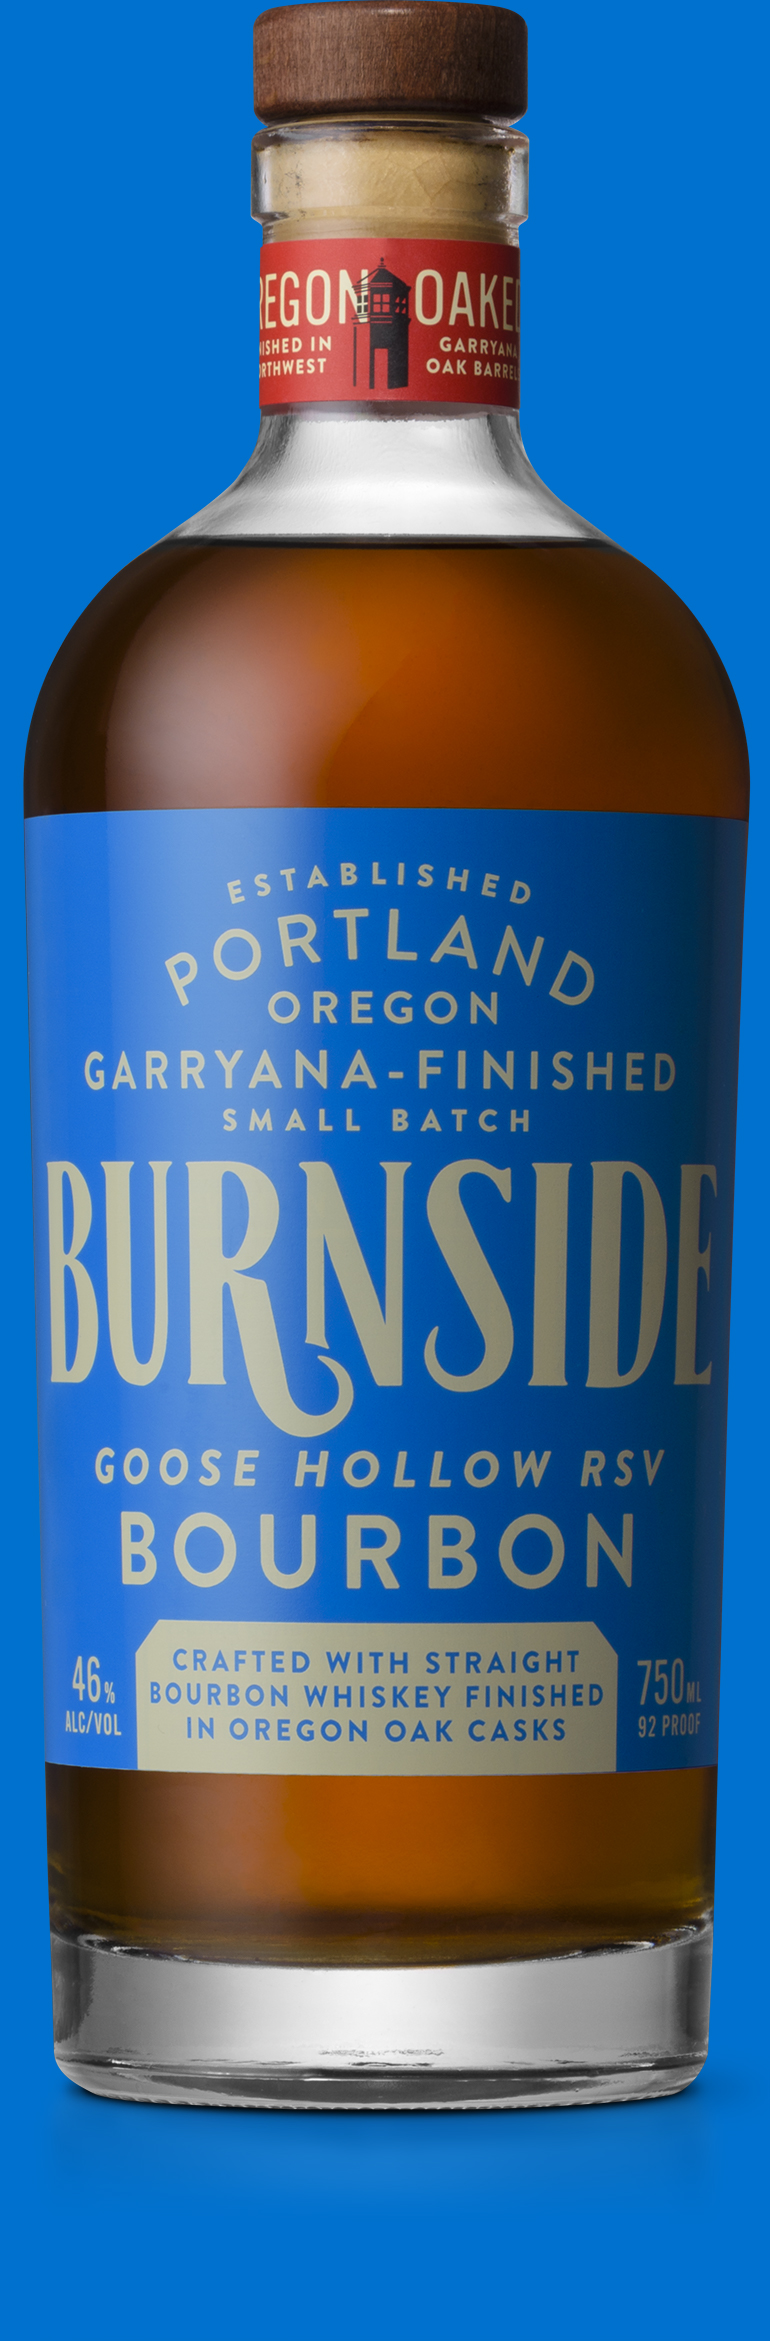 Burnside Goose Hollow RSV straight bourbon